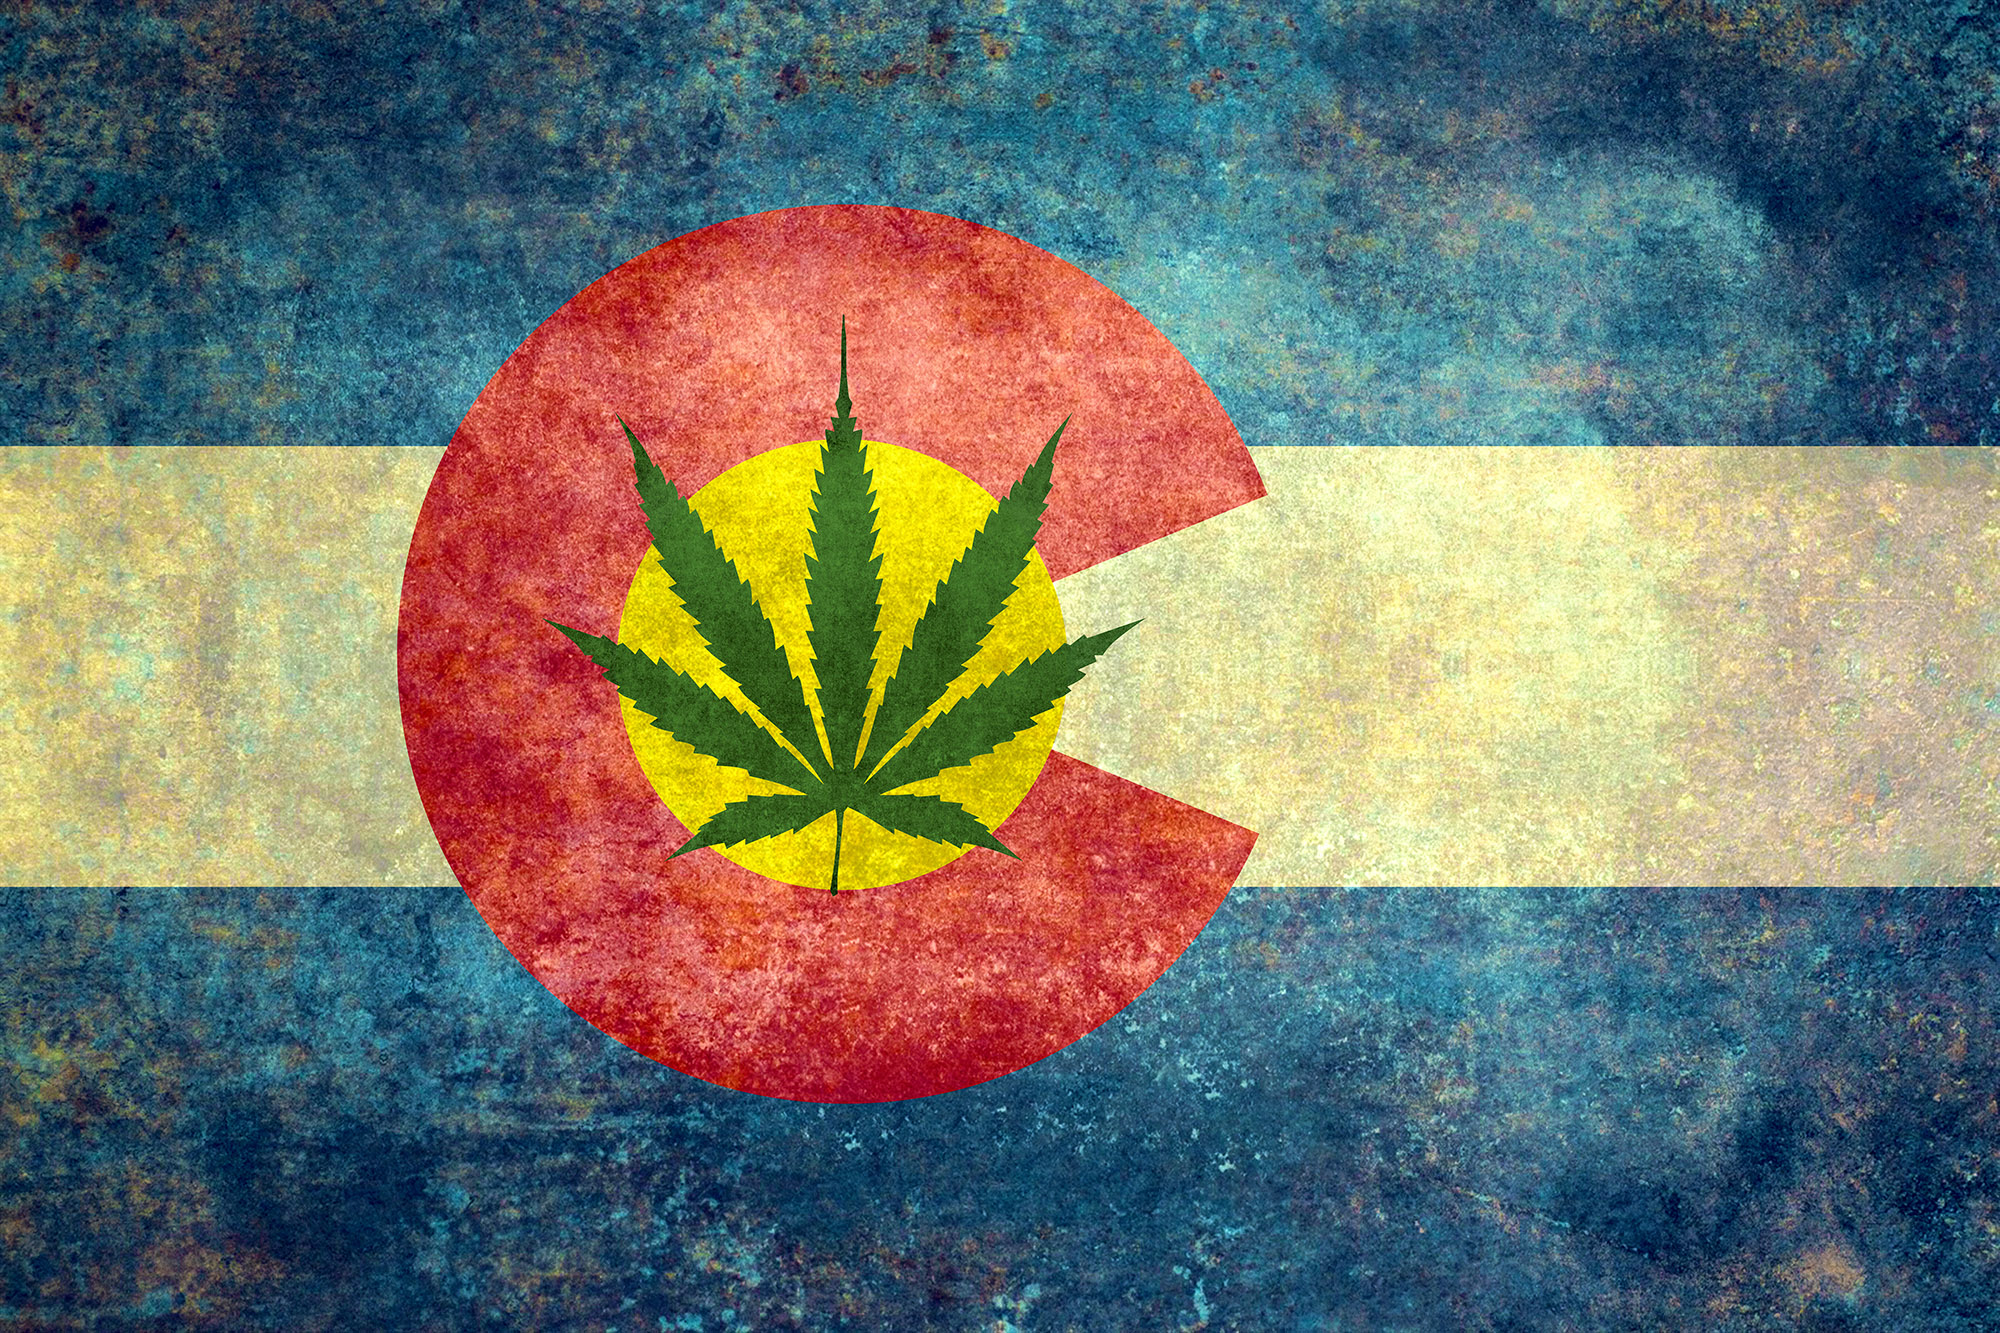 Colorado made $1B in marijuana tax revenue: What could this mean for federal legalization?